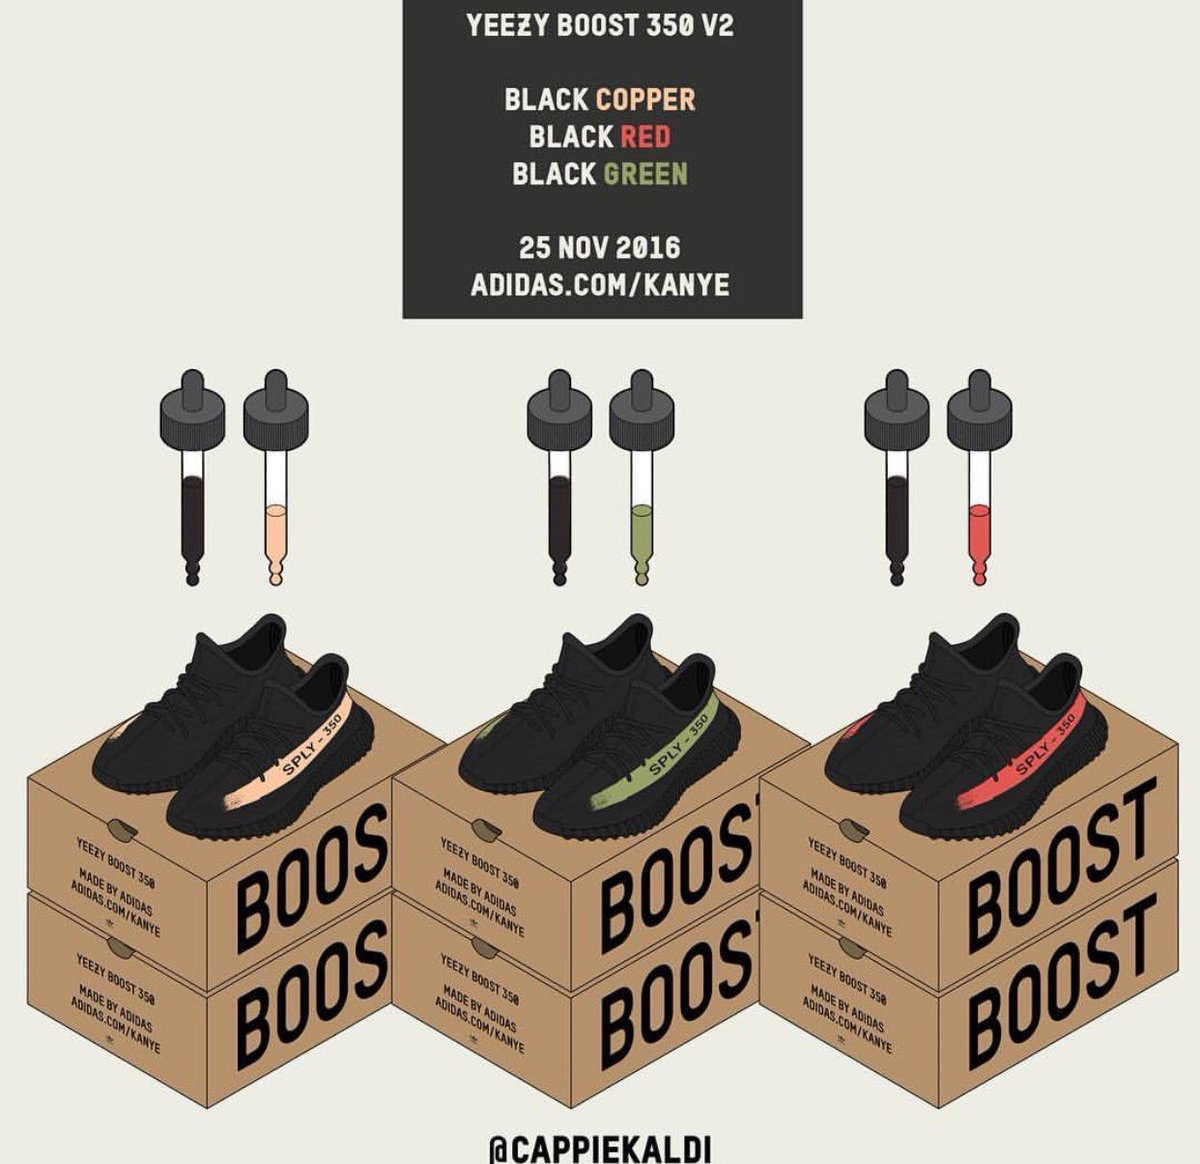 yeezy-boost-350-v2-release-20161123